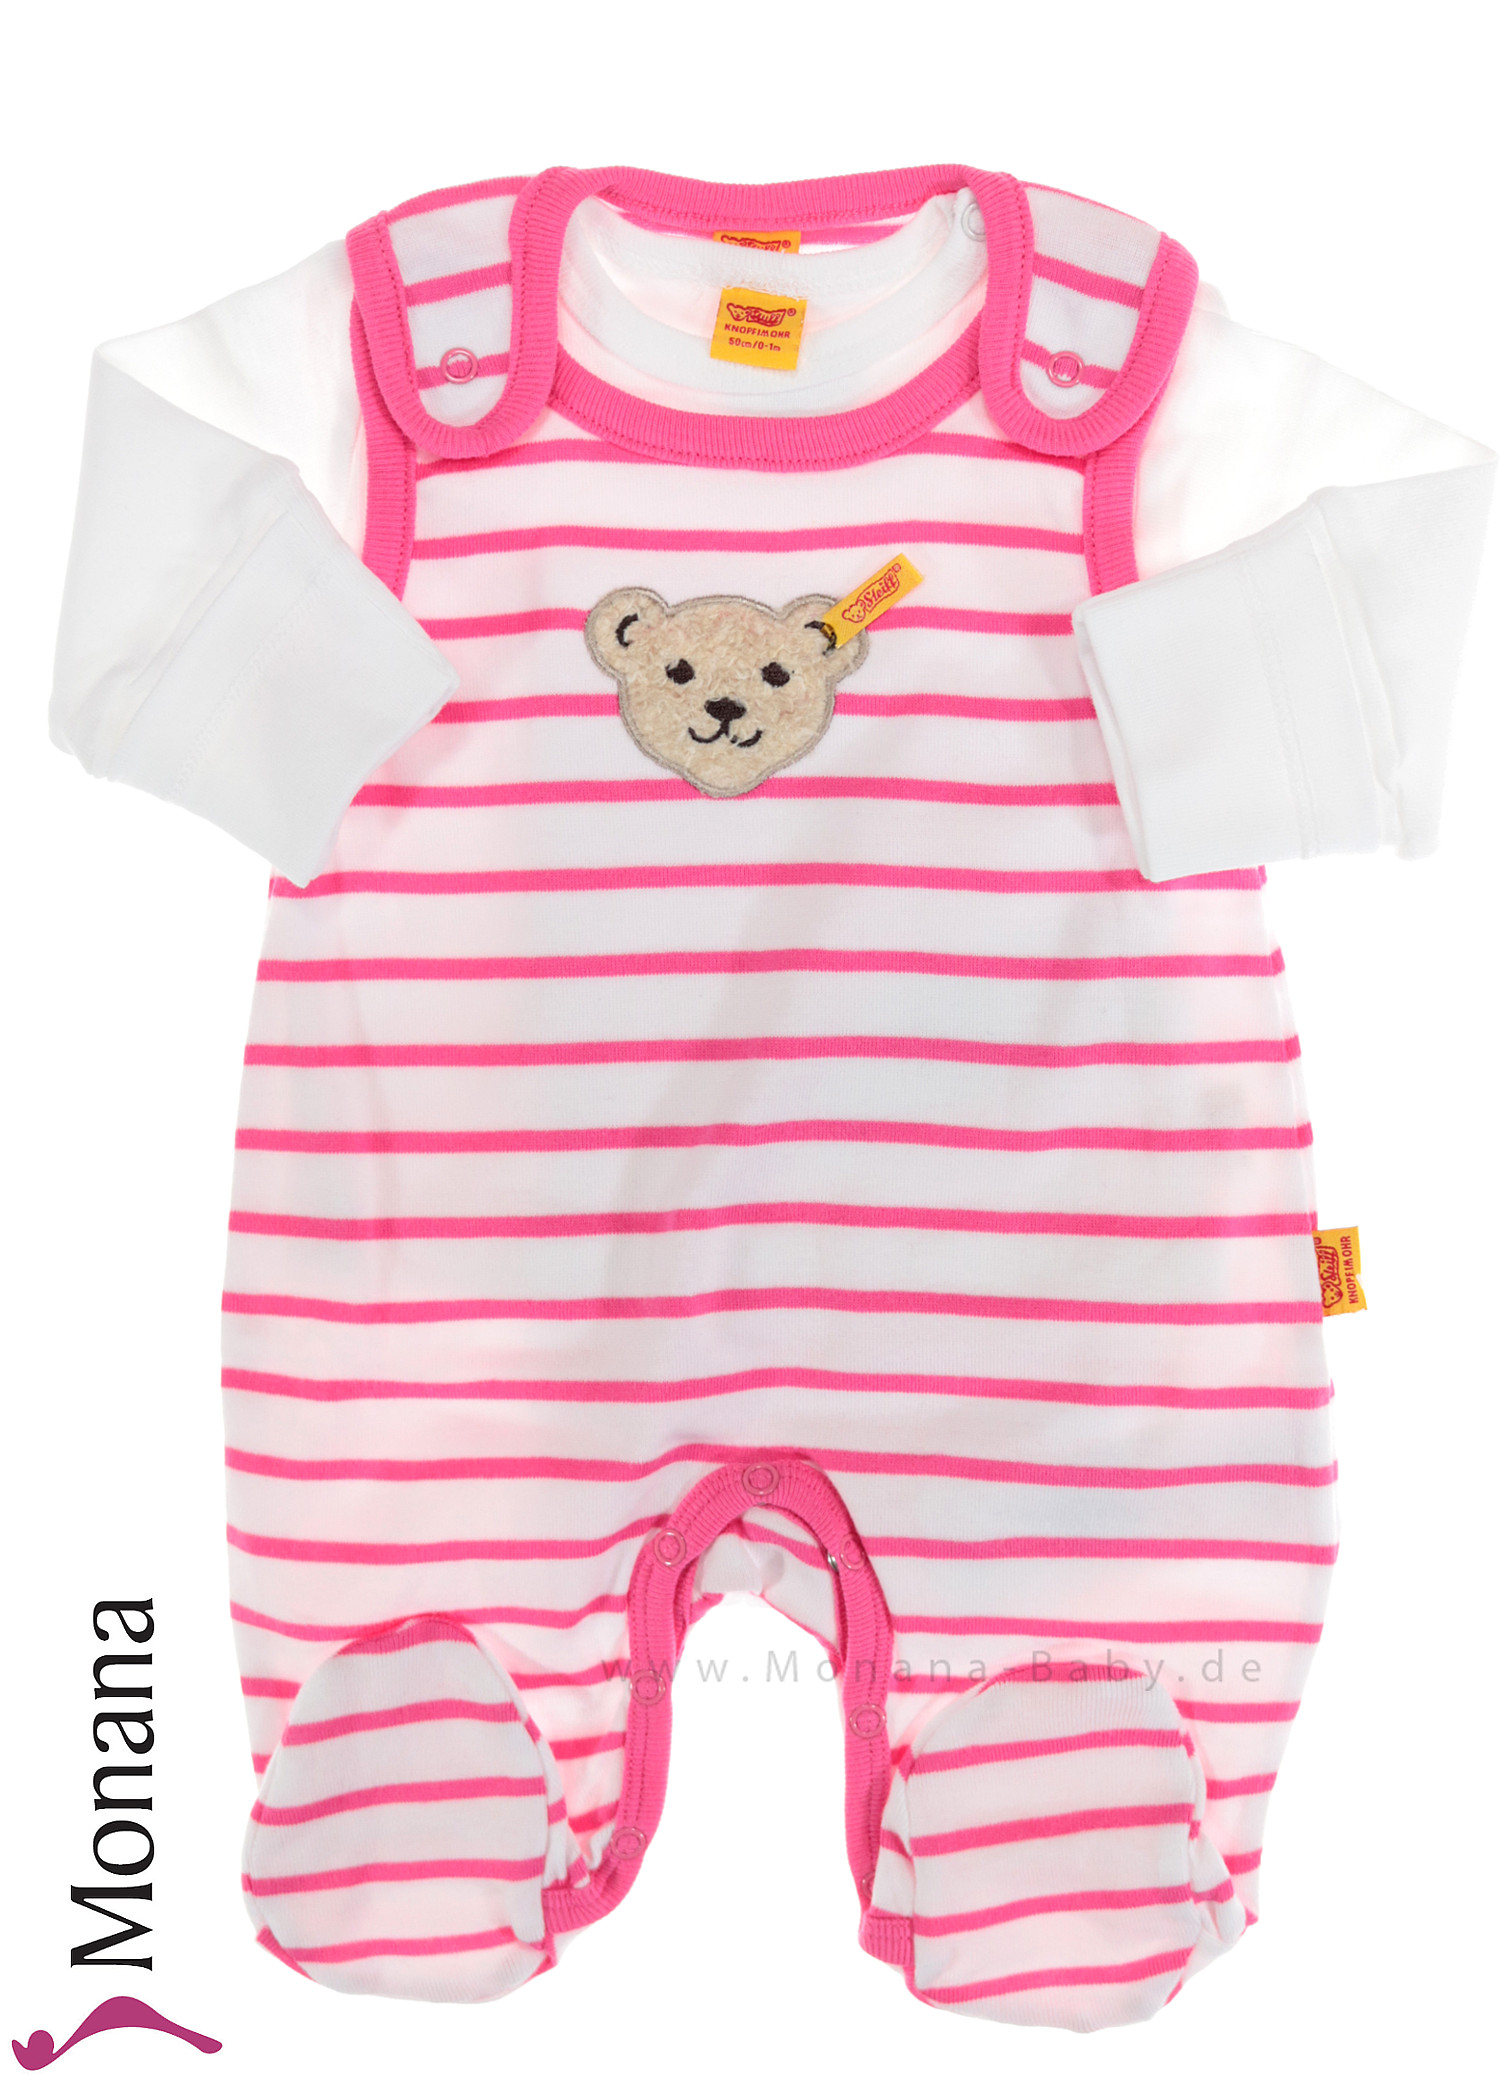 Steiff Collection Baby-Strampler & Baby-Shirt  Summer Colors pink<br>Größe: 56